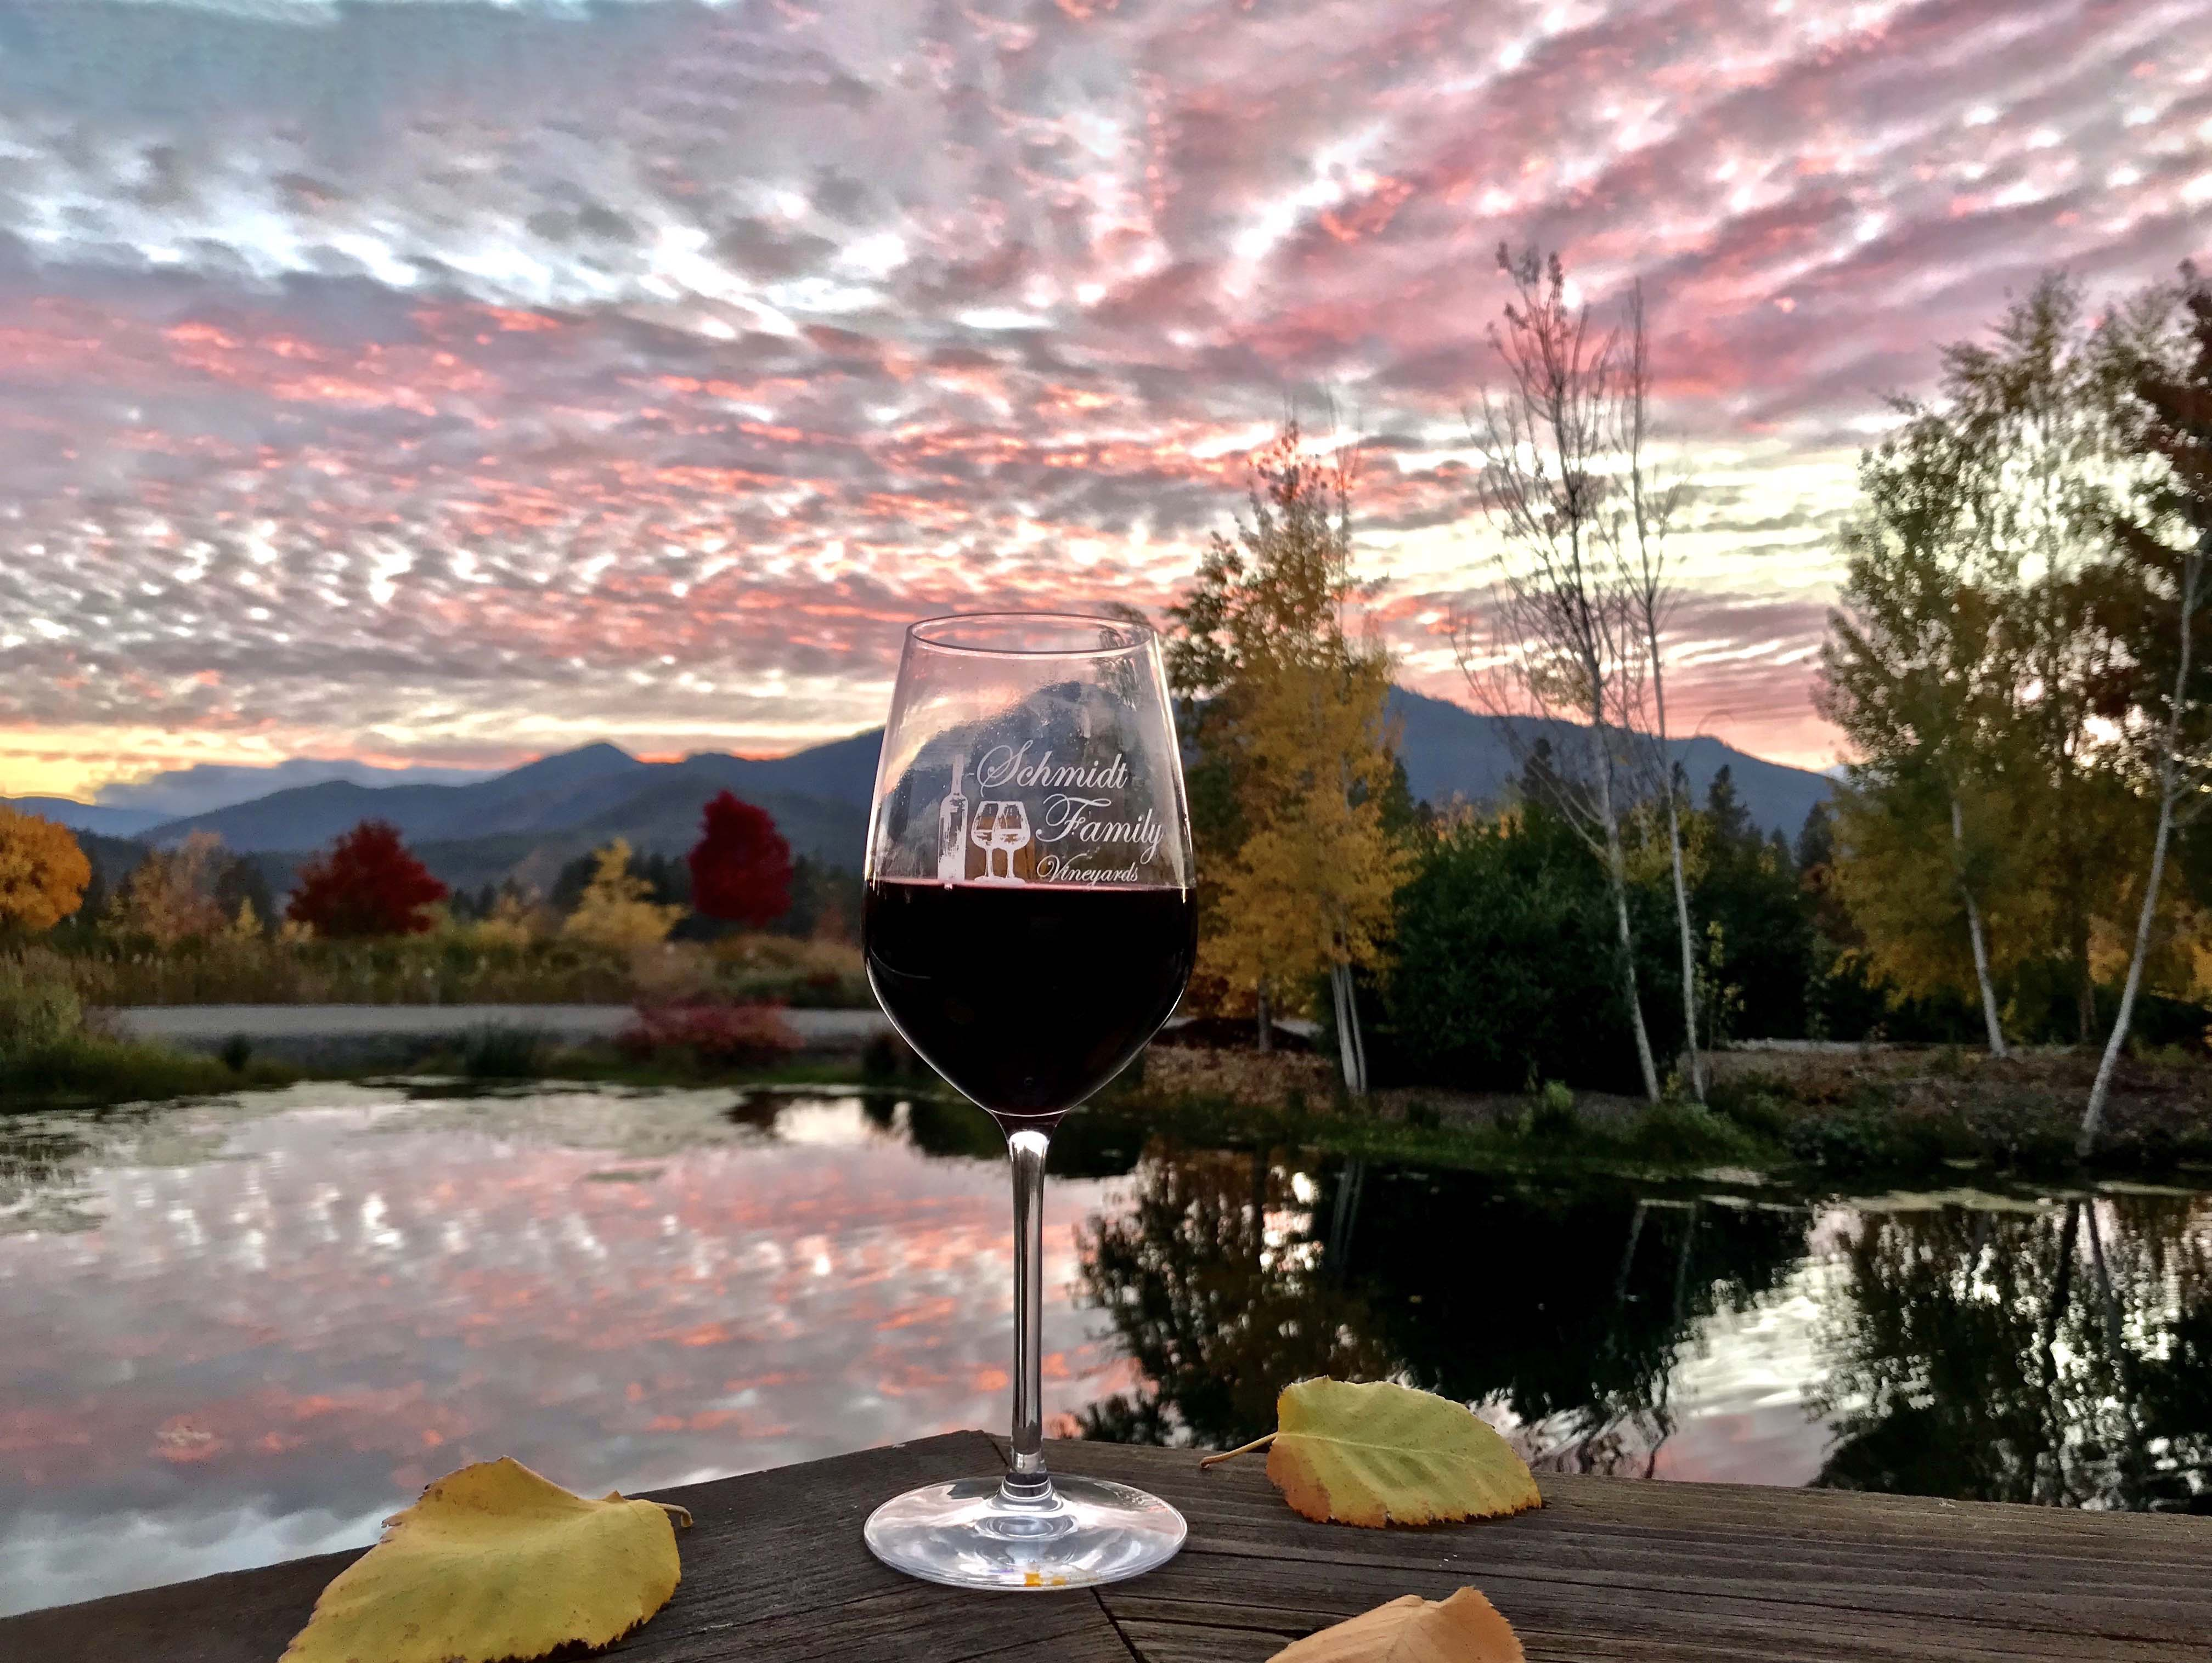 Southern Oregon — a glass of red wind against a sunset sky.